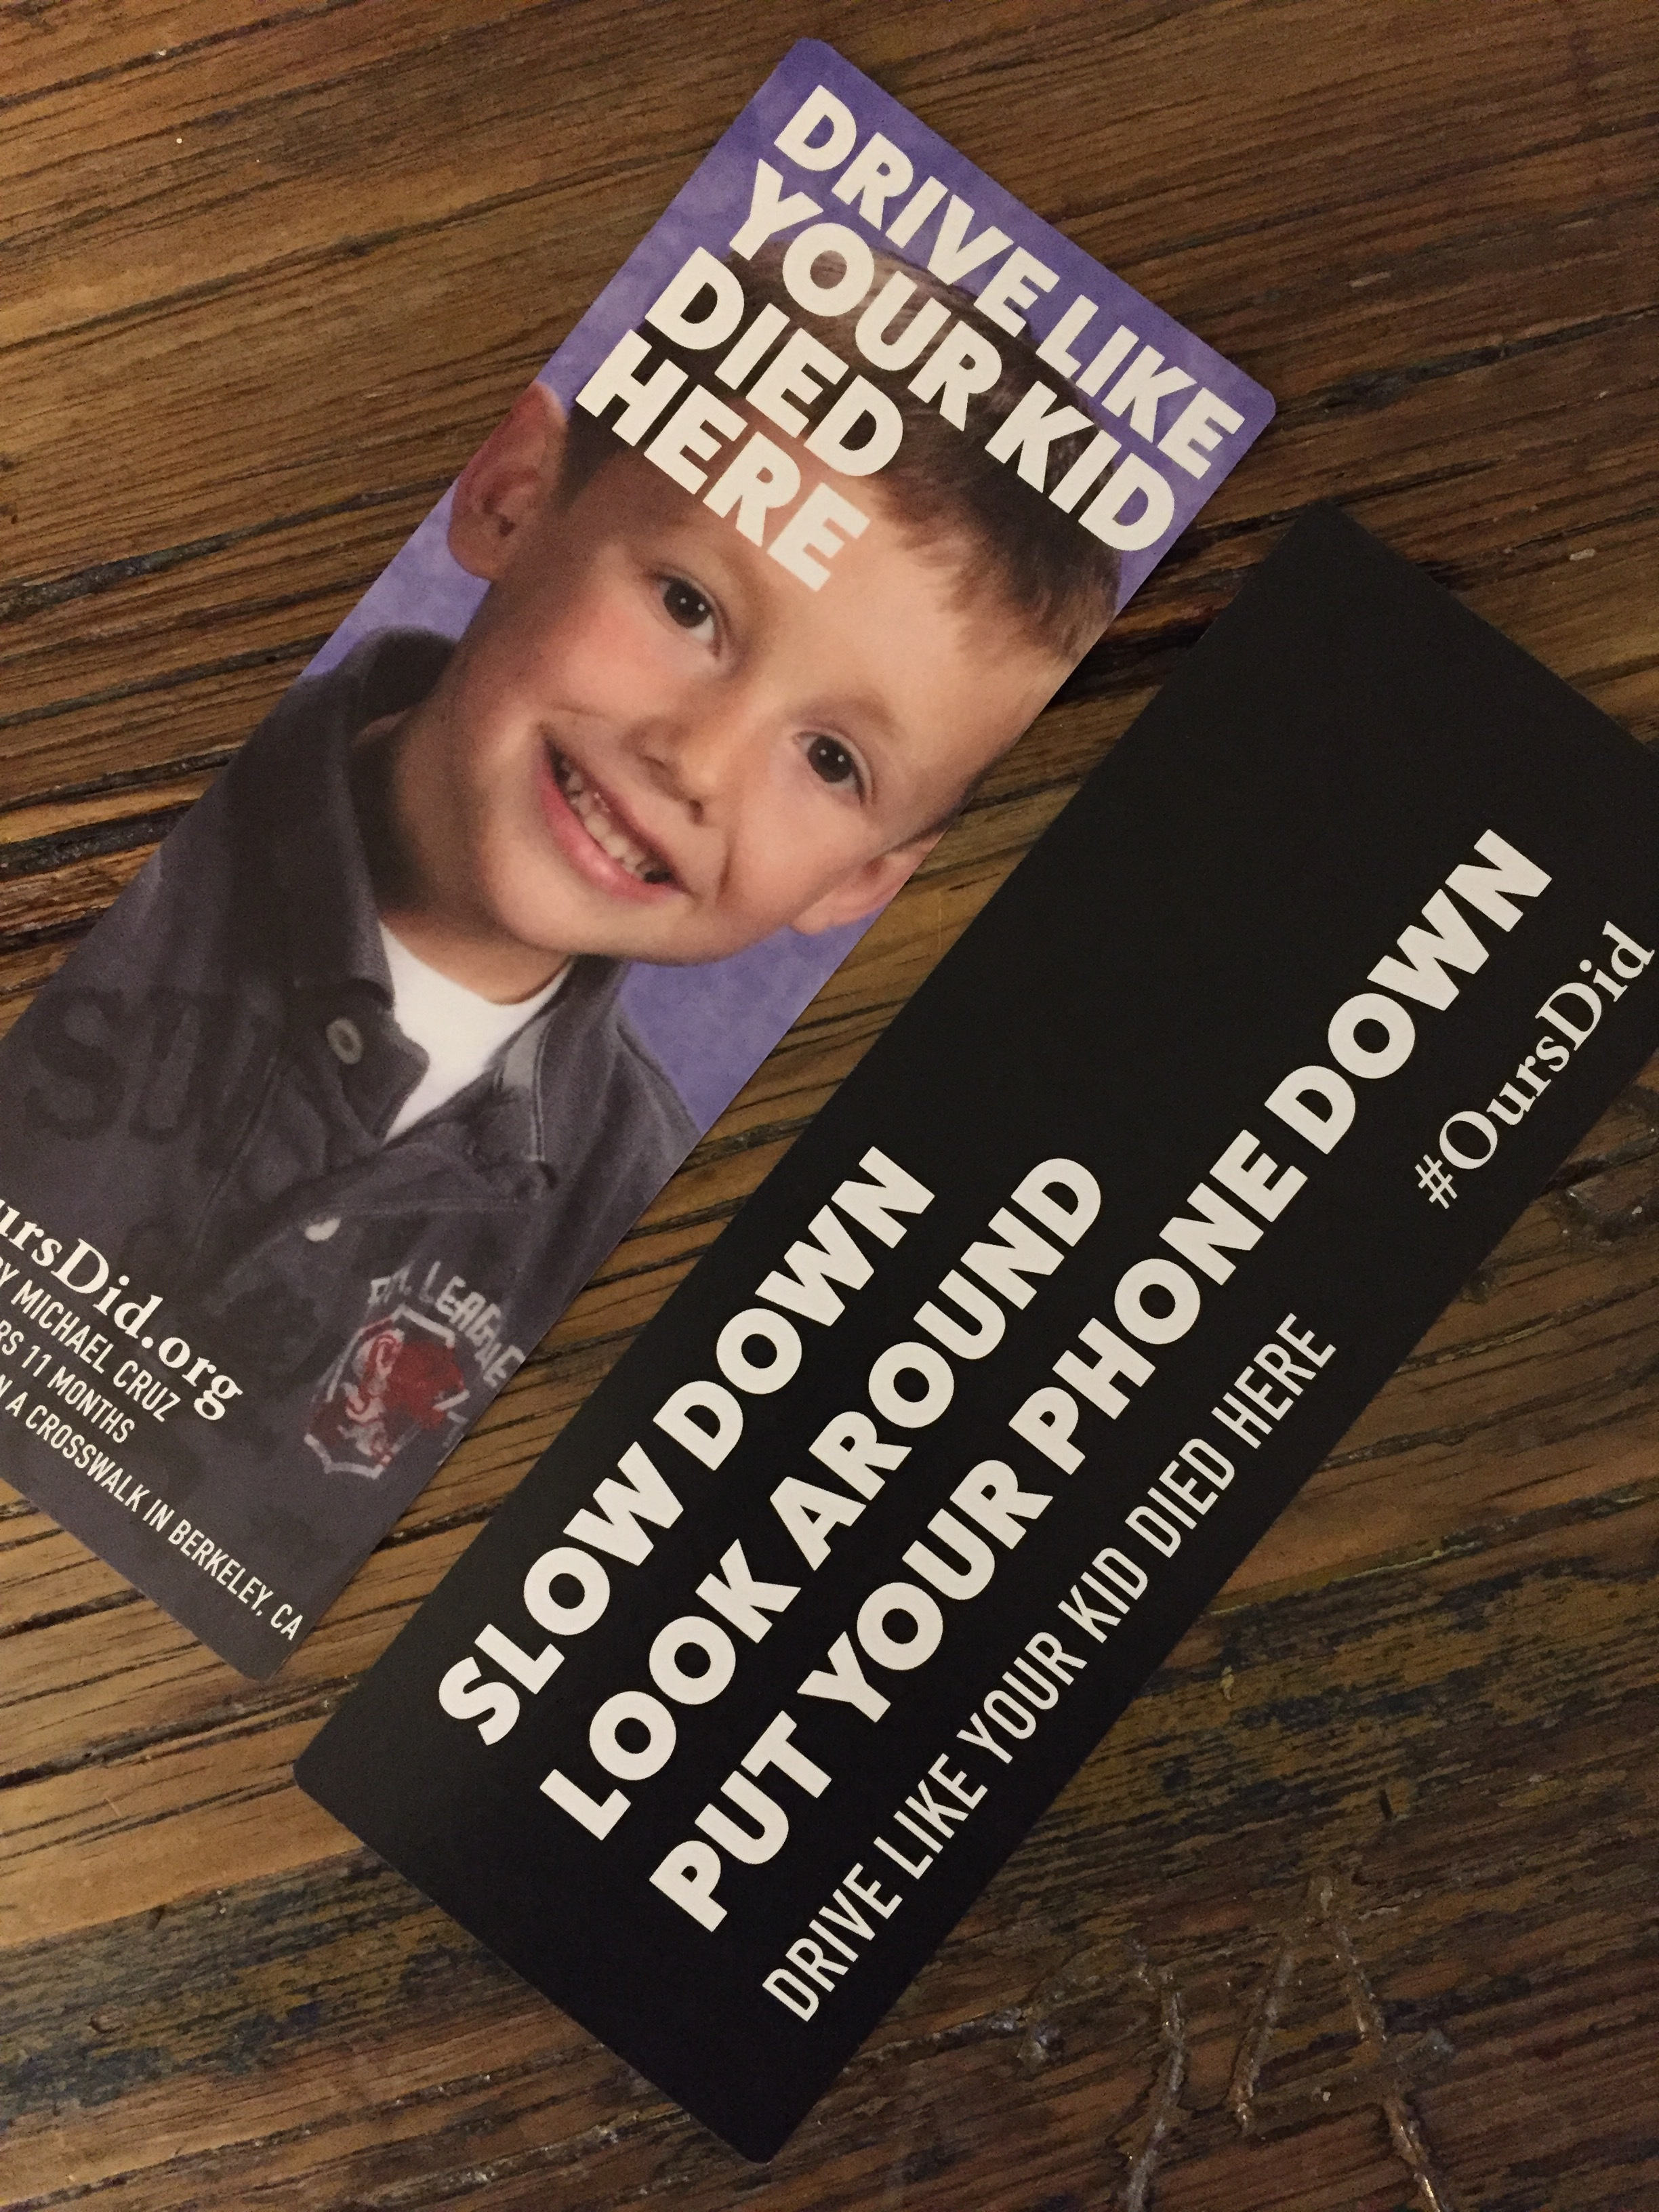 OursDid.org provided flyers for the Berkeley Police Department to use to educate motorists on the tragic consequences of rolling stops, speeding, and distracted driving.